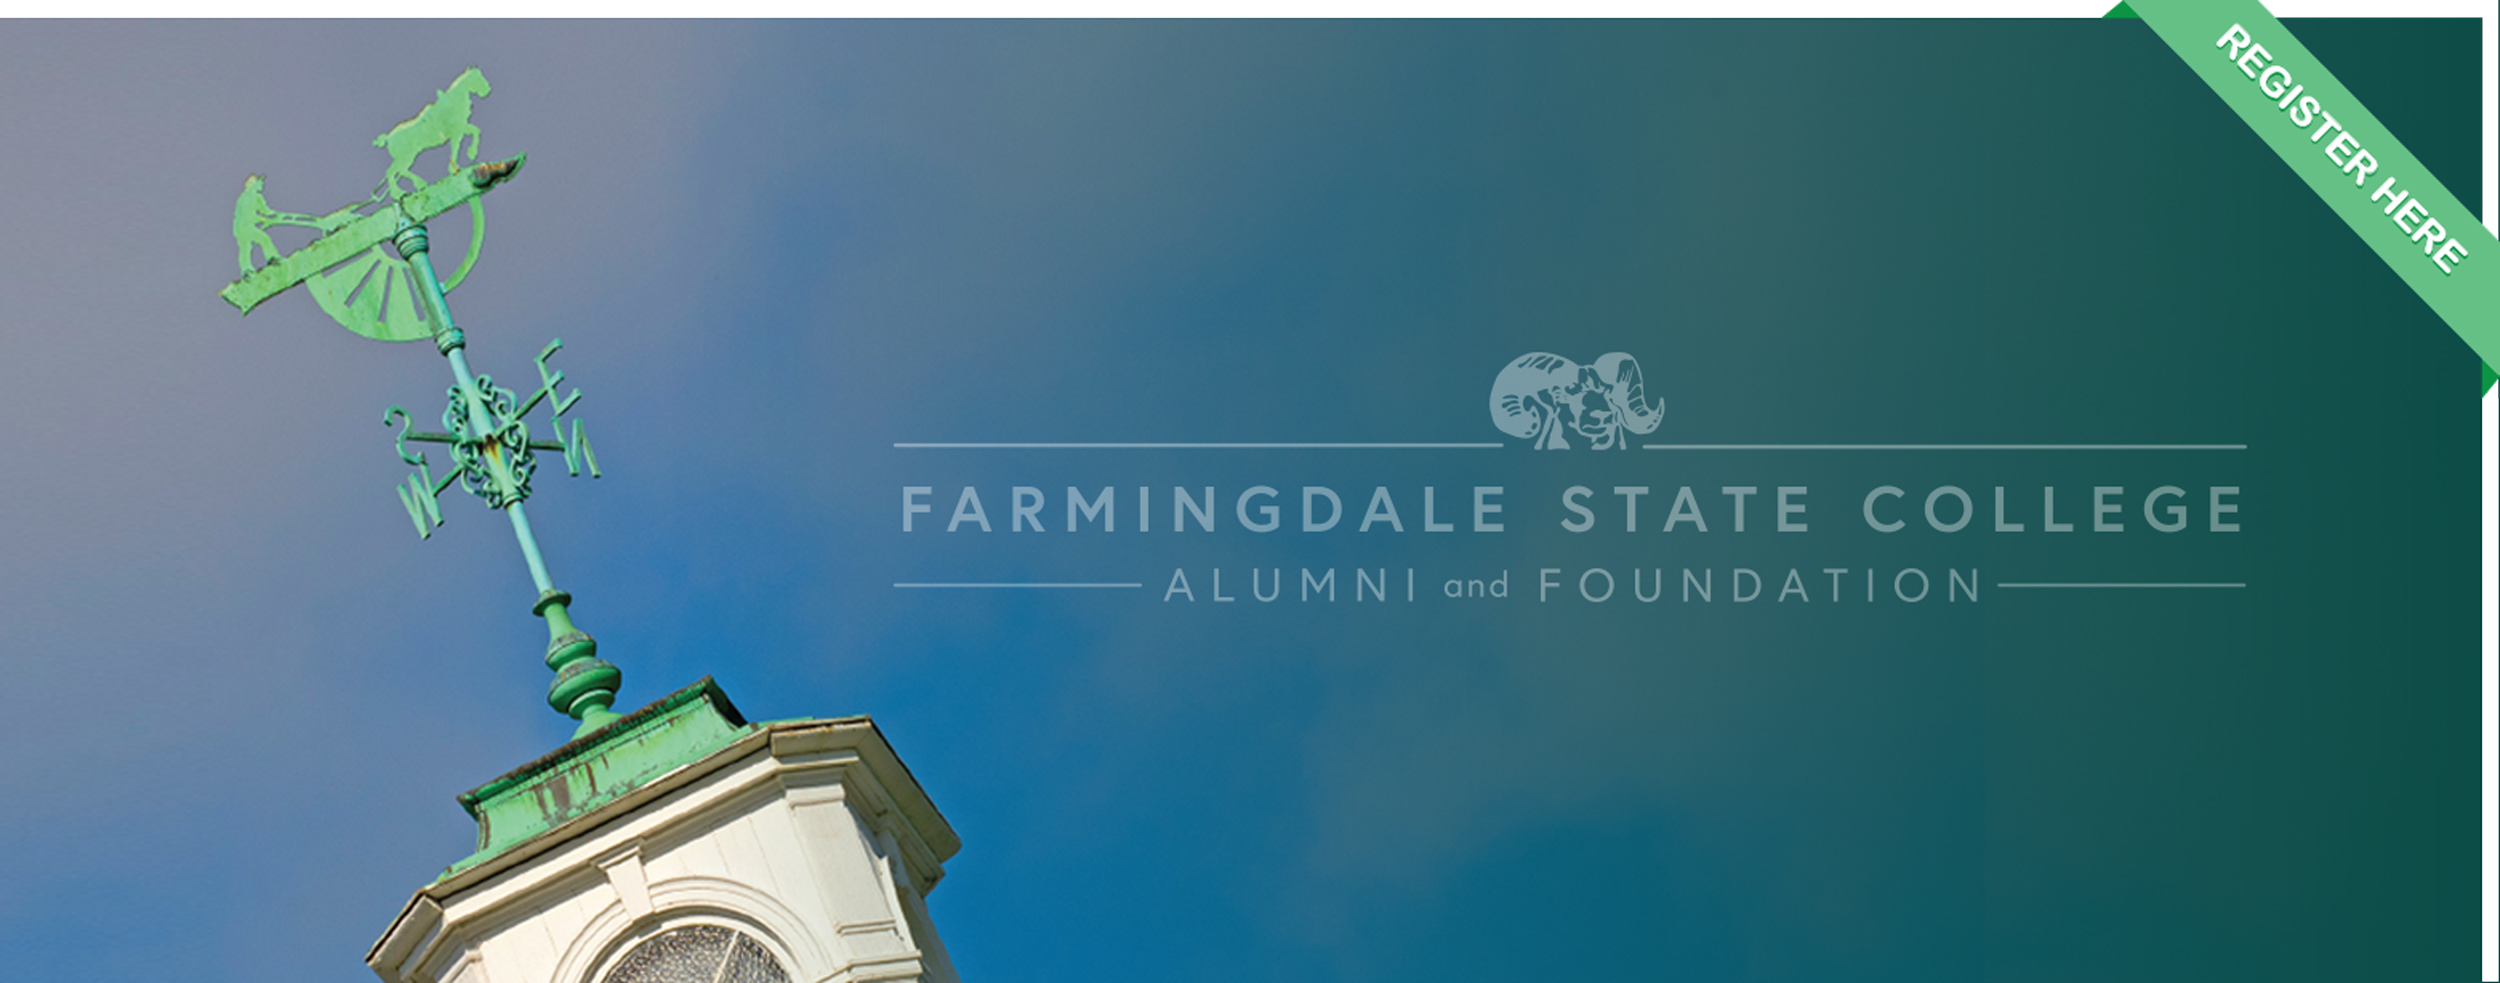 building with weathervane and farmingdale state college alumni association